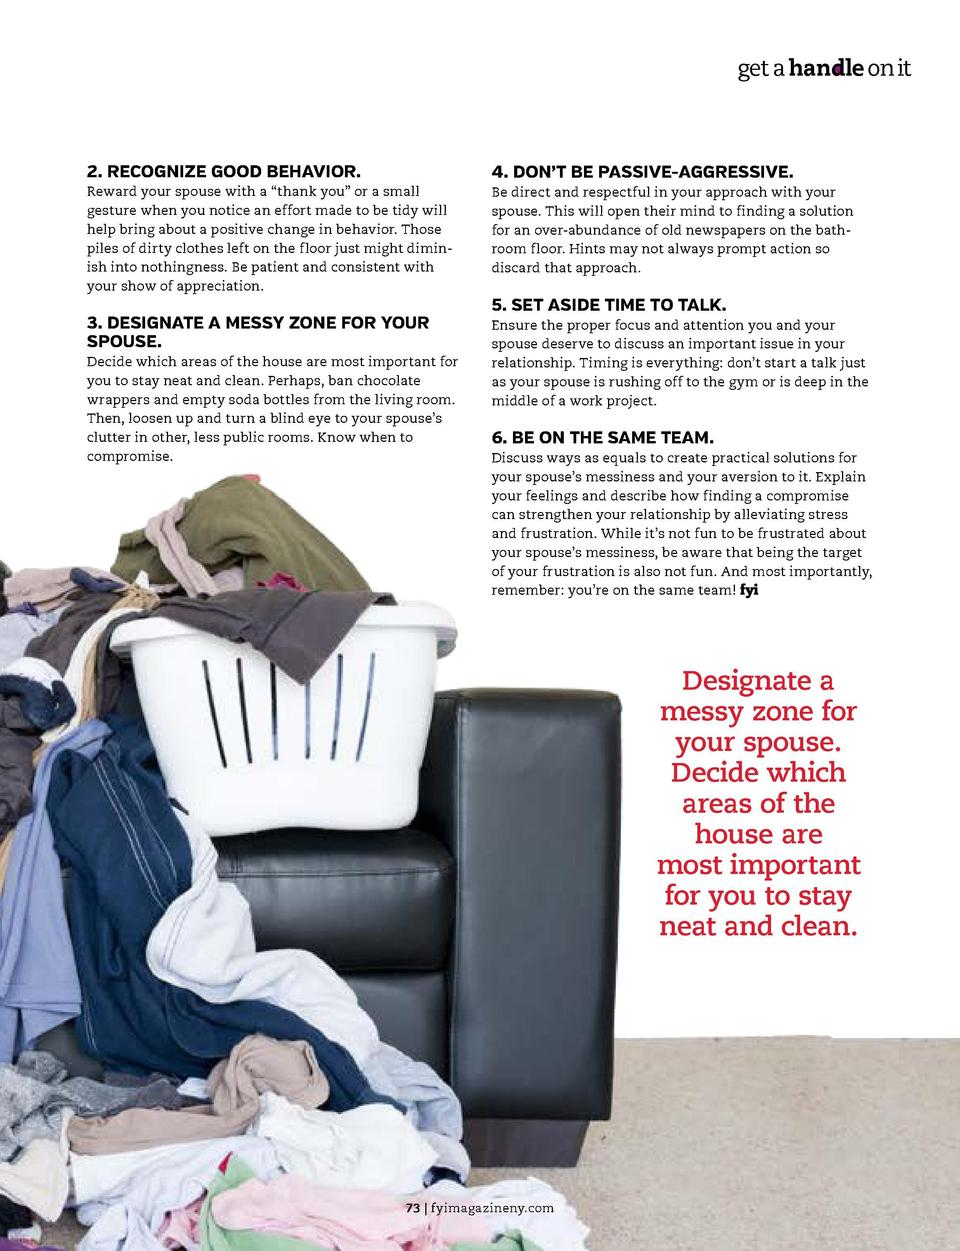 get a handle on it  get a handle on it  6 TIPS FOR DEALING WITH A MESSY SPOUSE  2. RECOGNIZE GOOD BEHAVIOR. Reward your sp...